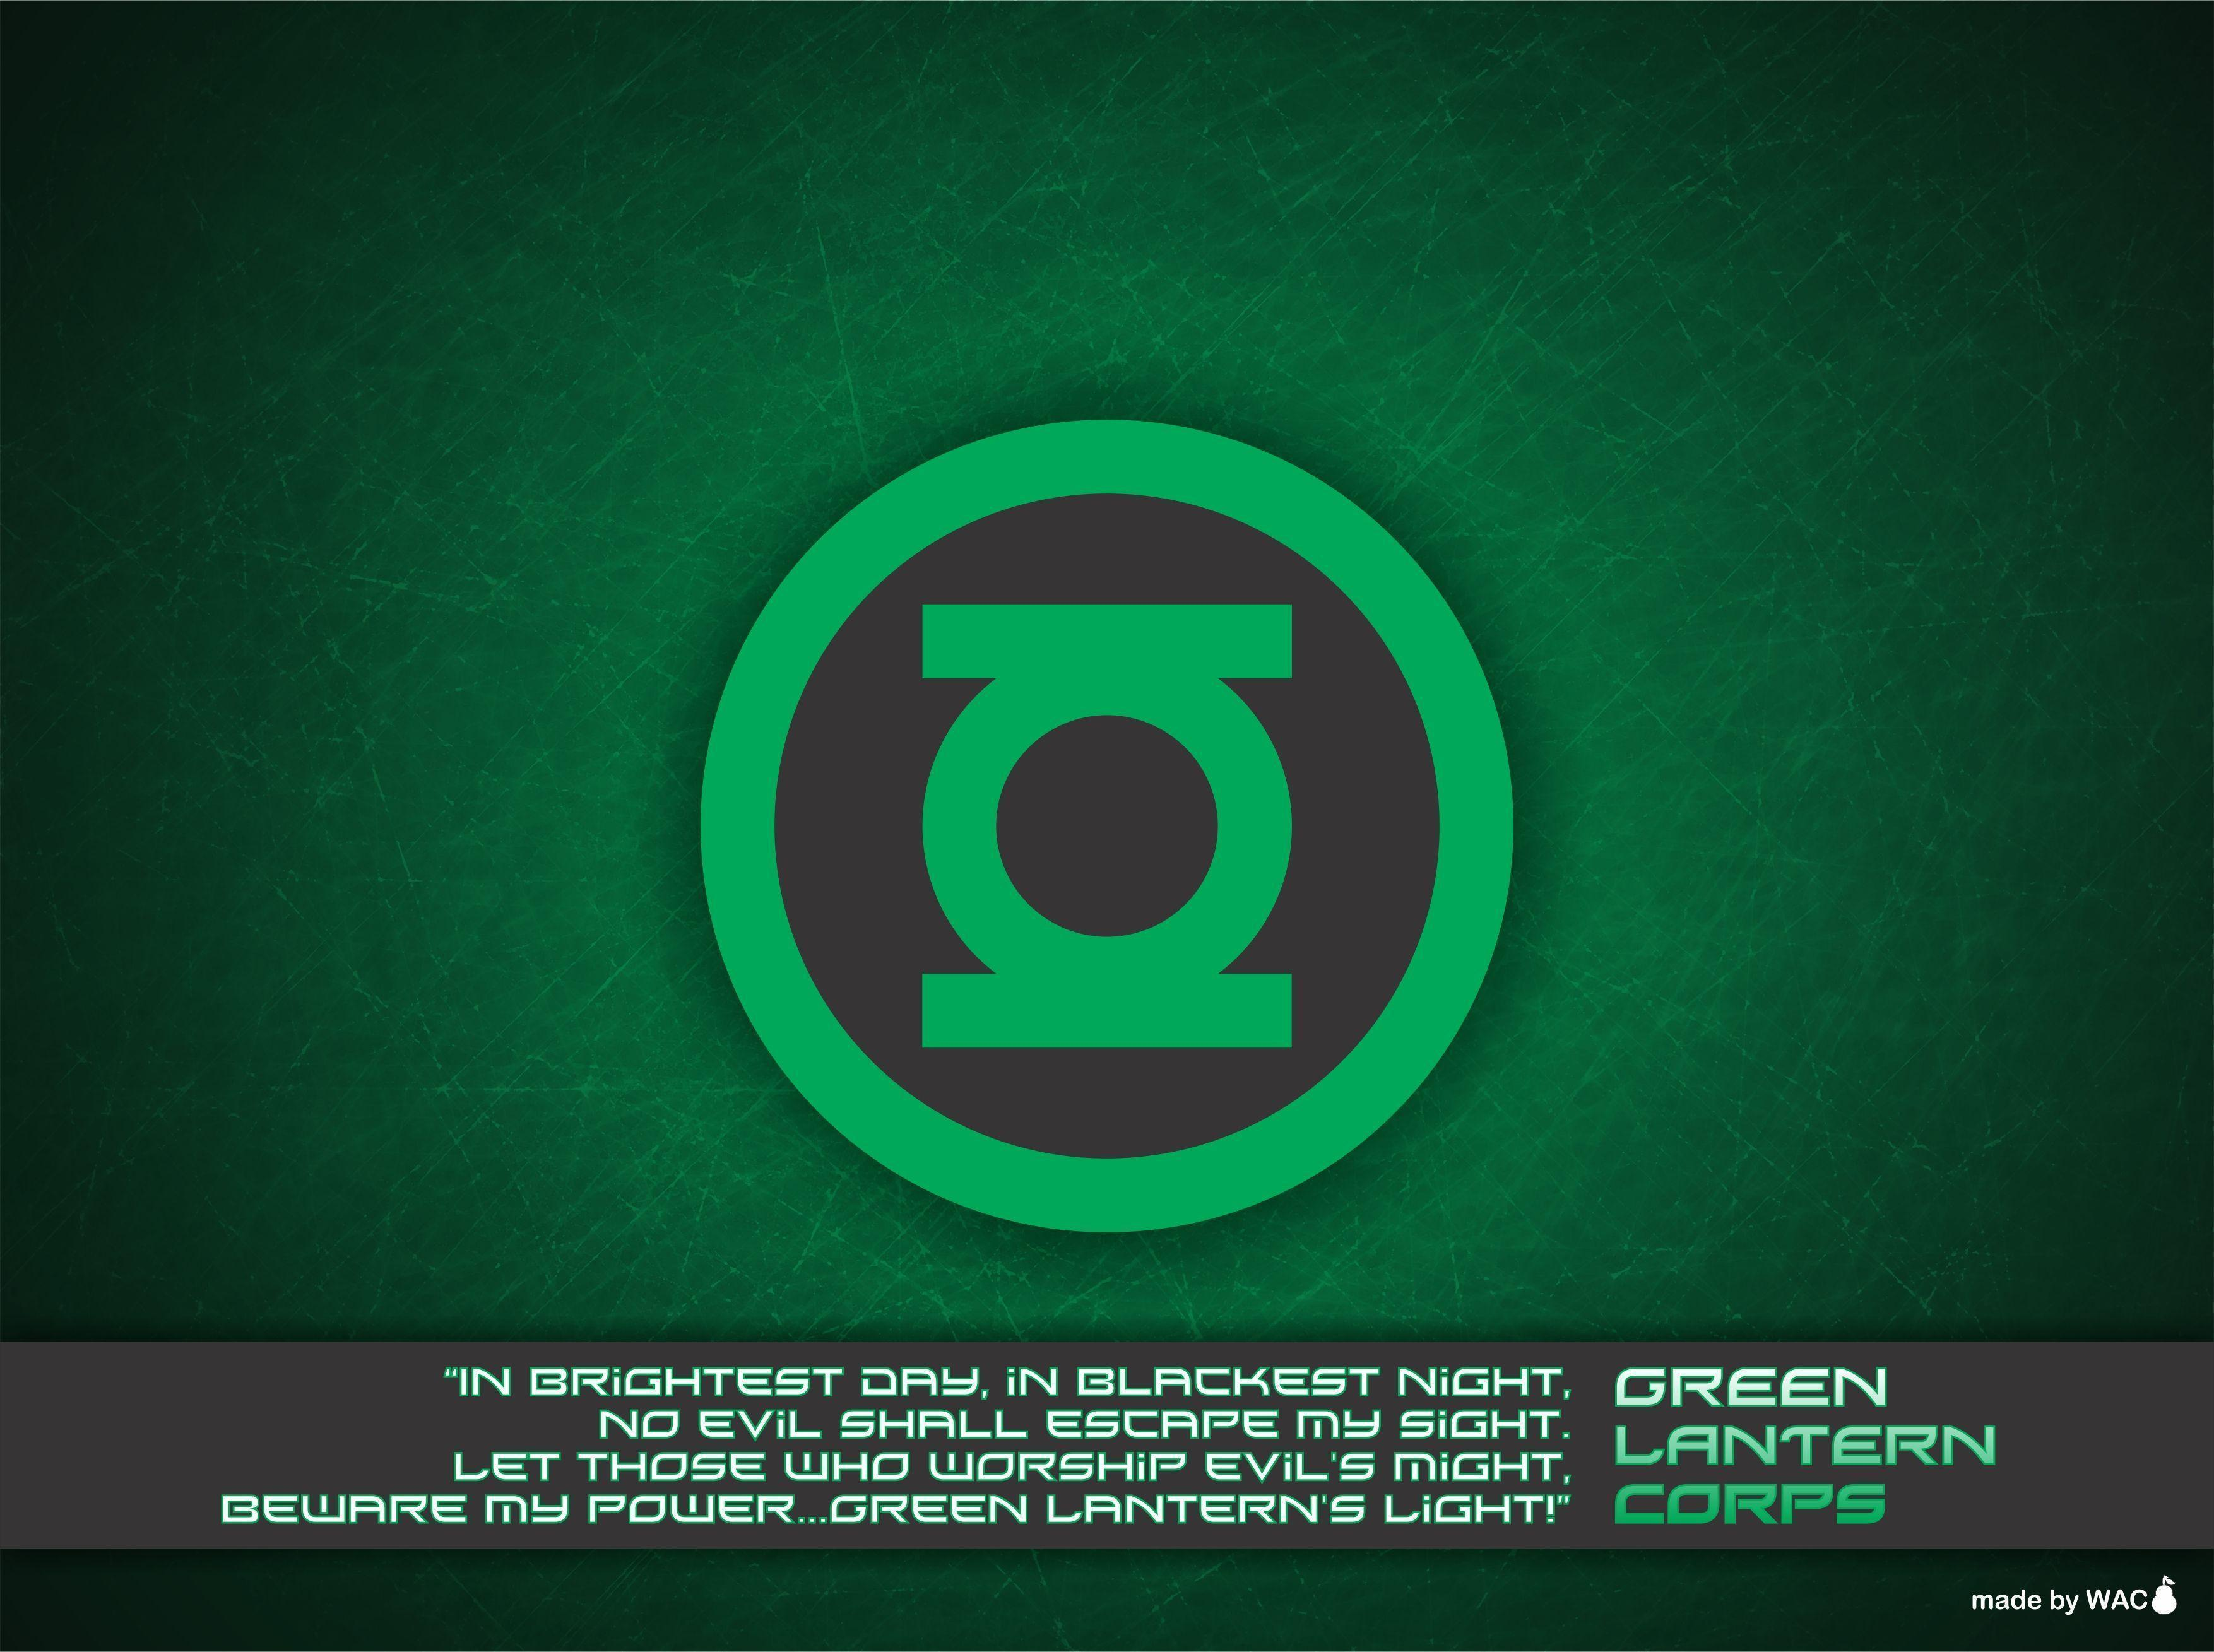 Lantern Corps Wallpapers